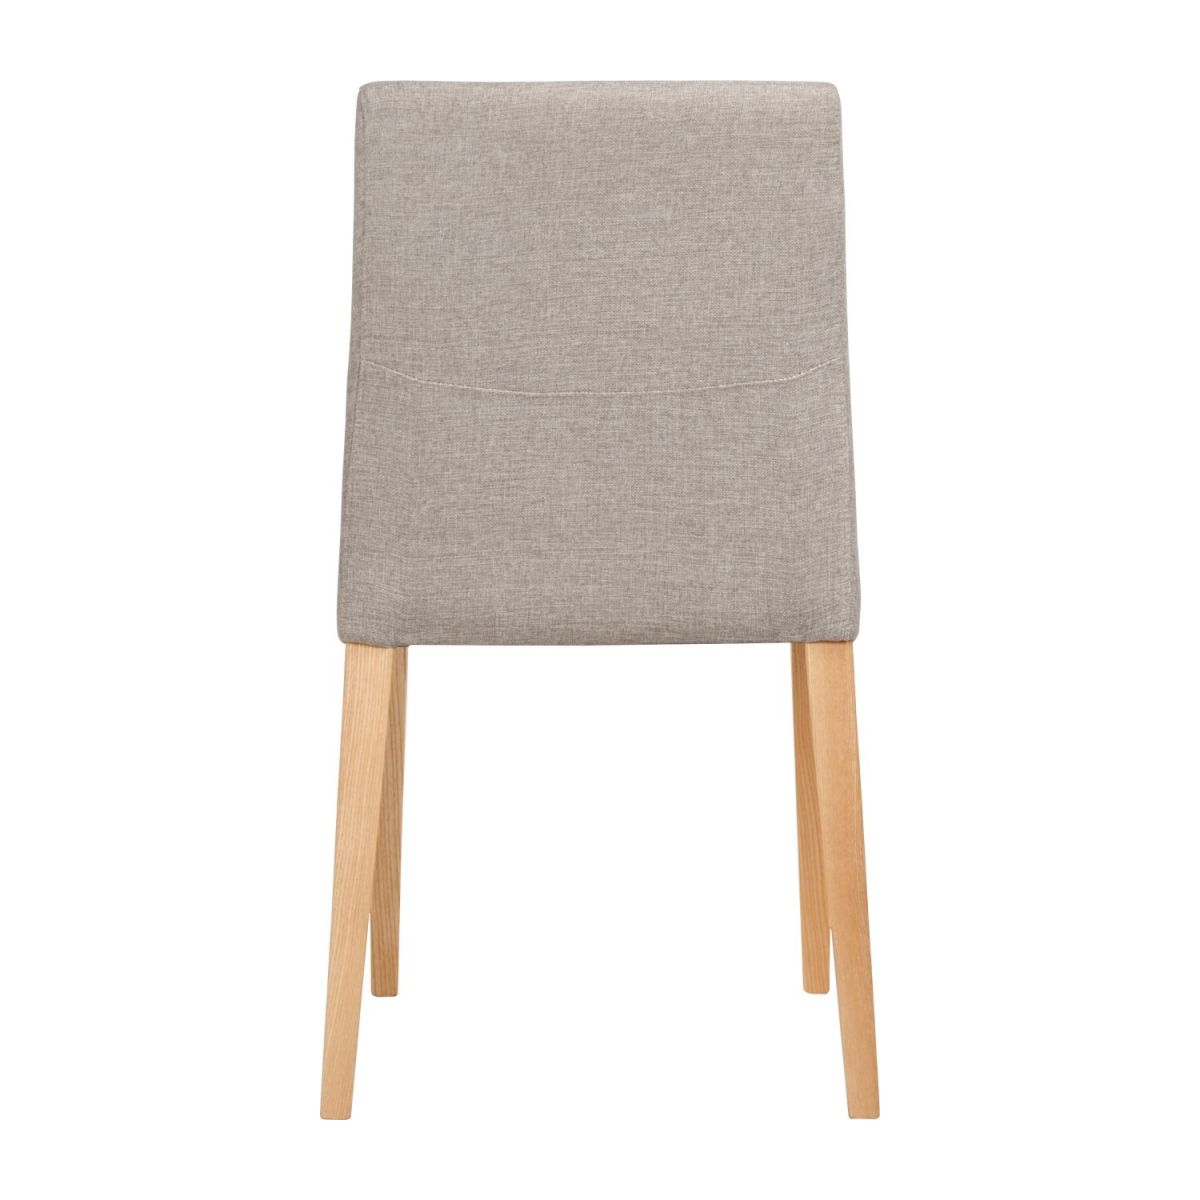 Chair made of fabric, beige with ash legs n°4